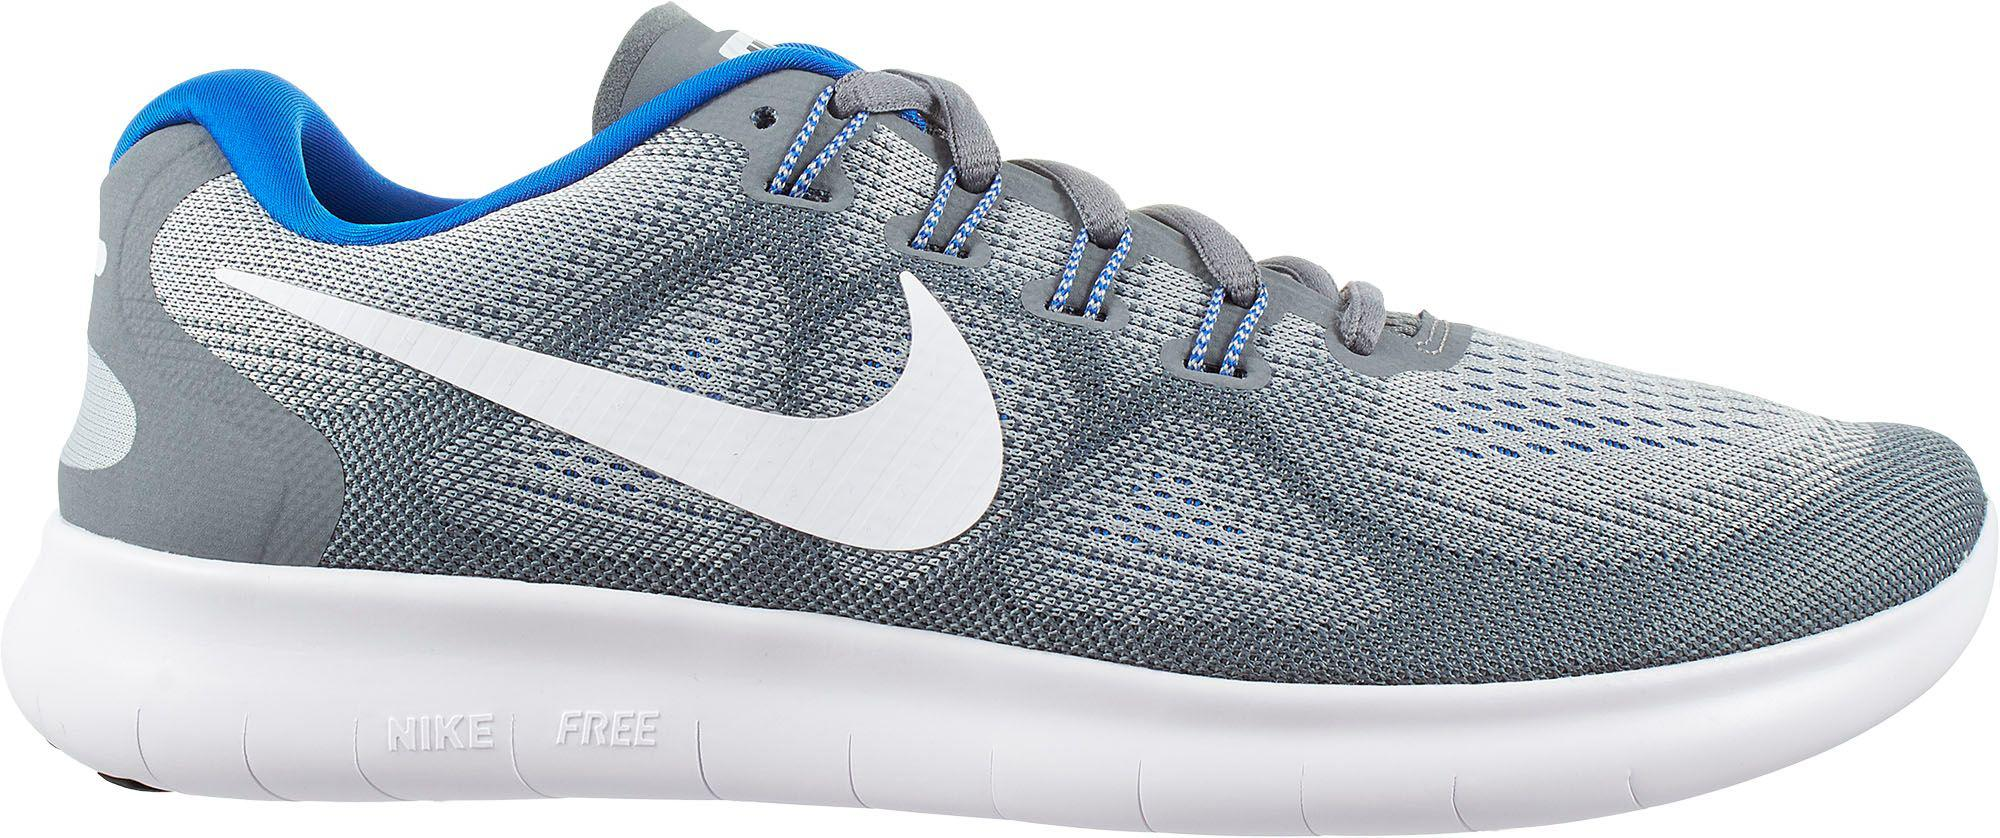 8553fe9839ed Lyst - Nike Free Rn 2017 Running Shoes in Blue for Men